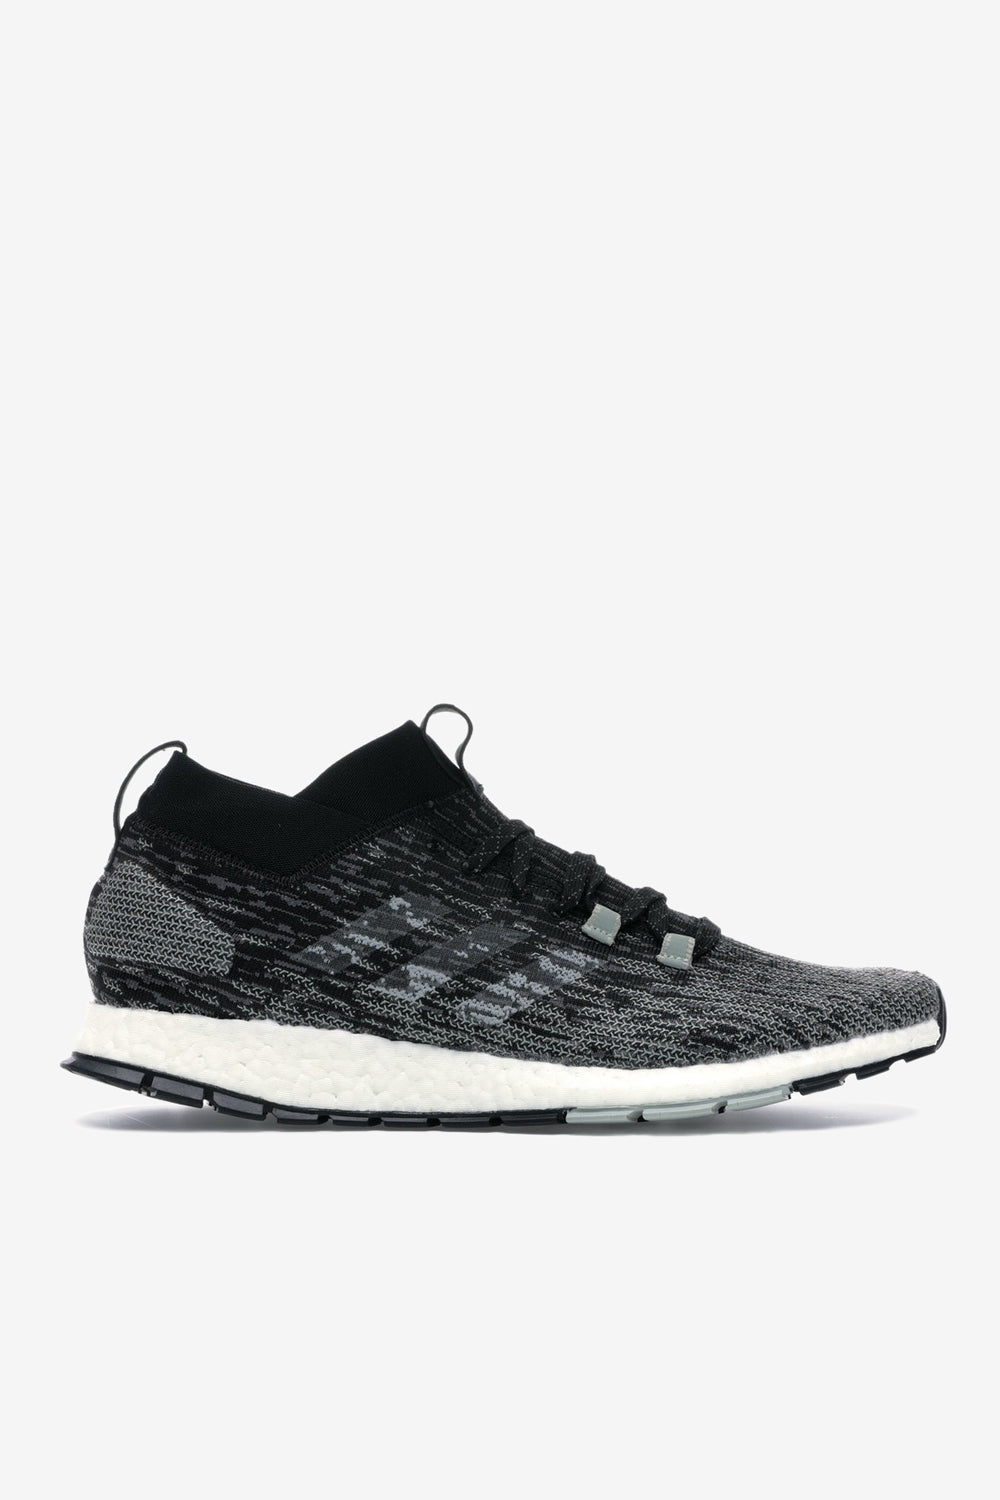 Pureboost RBL LTD